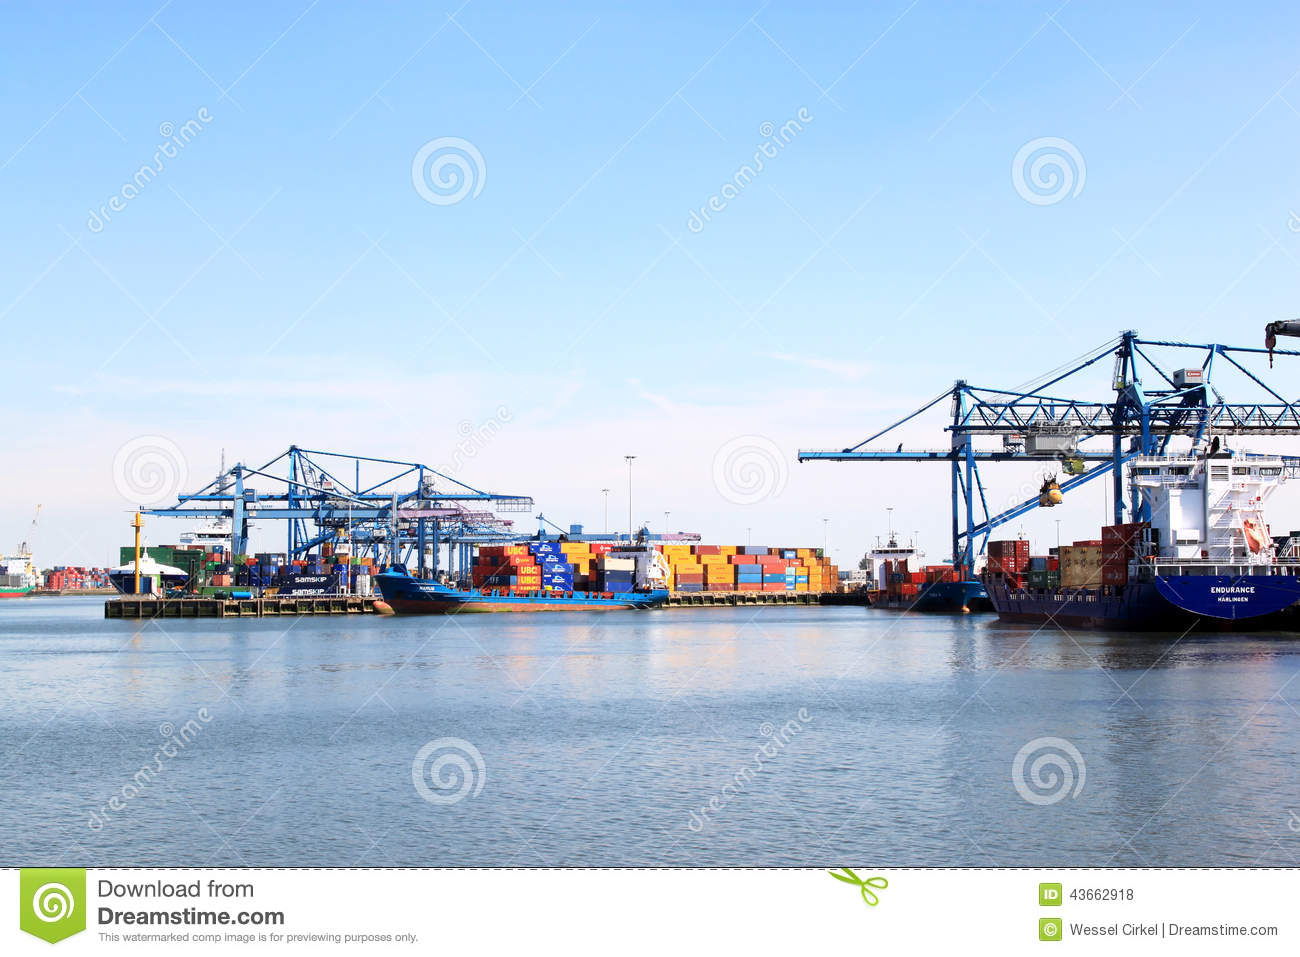 Rotterdam shipping port in the Netherlands